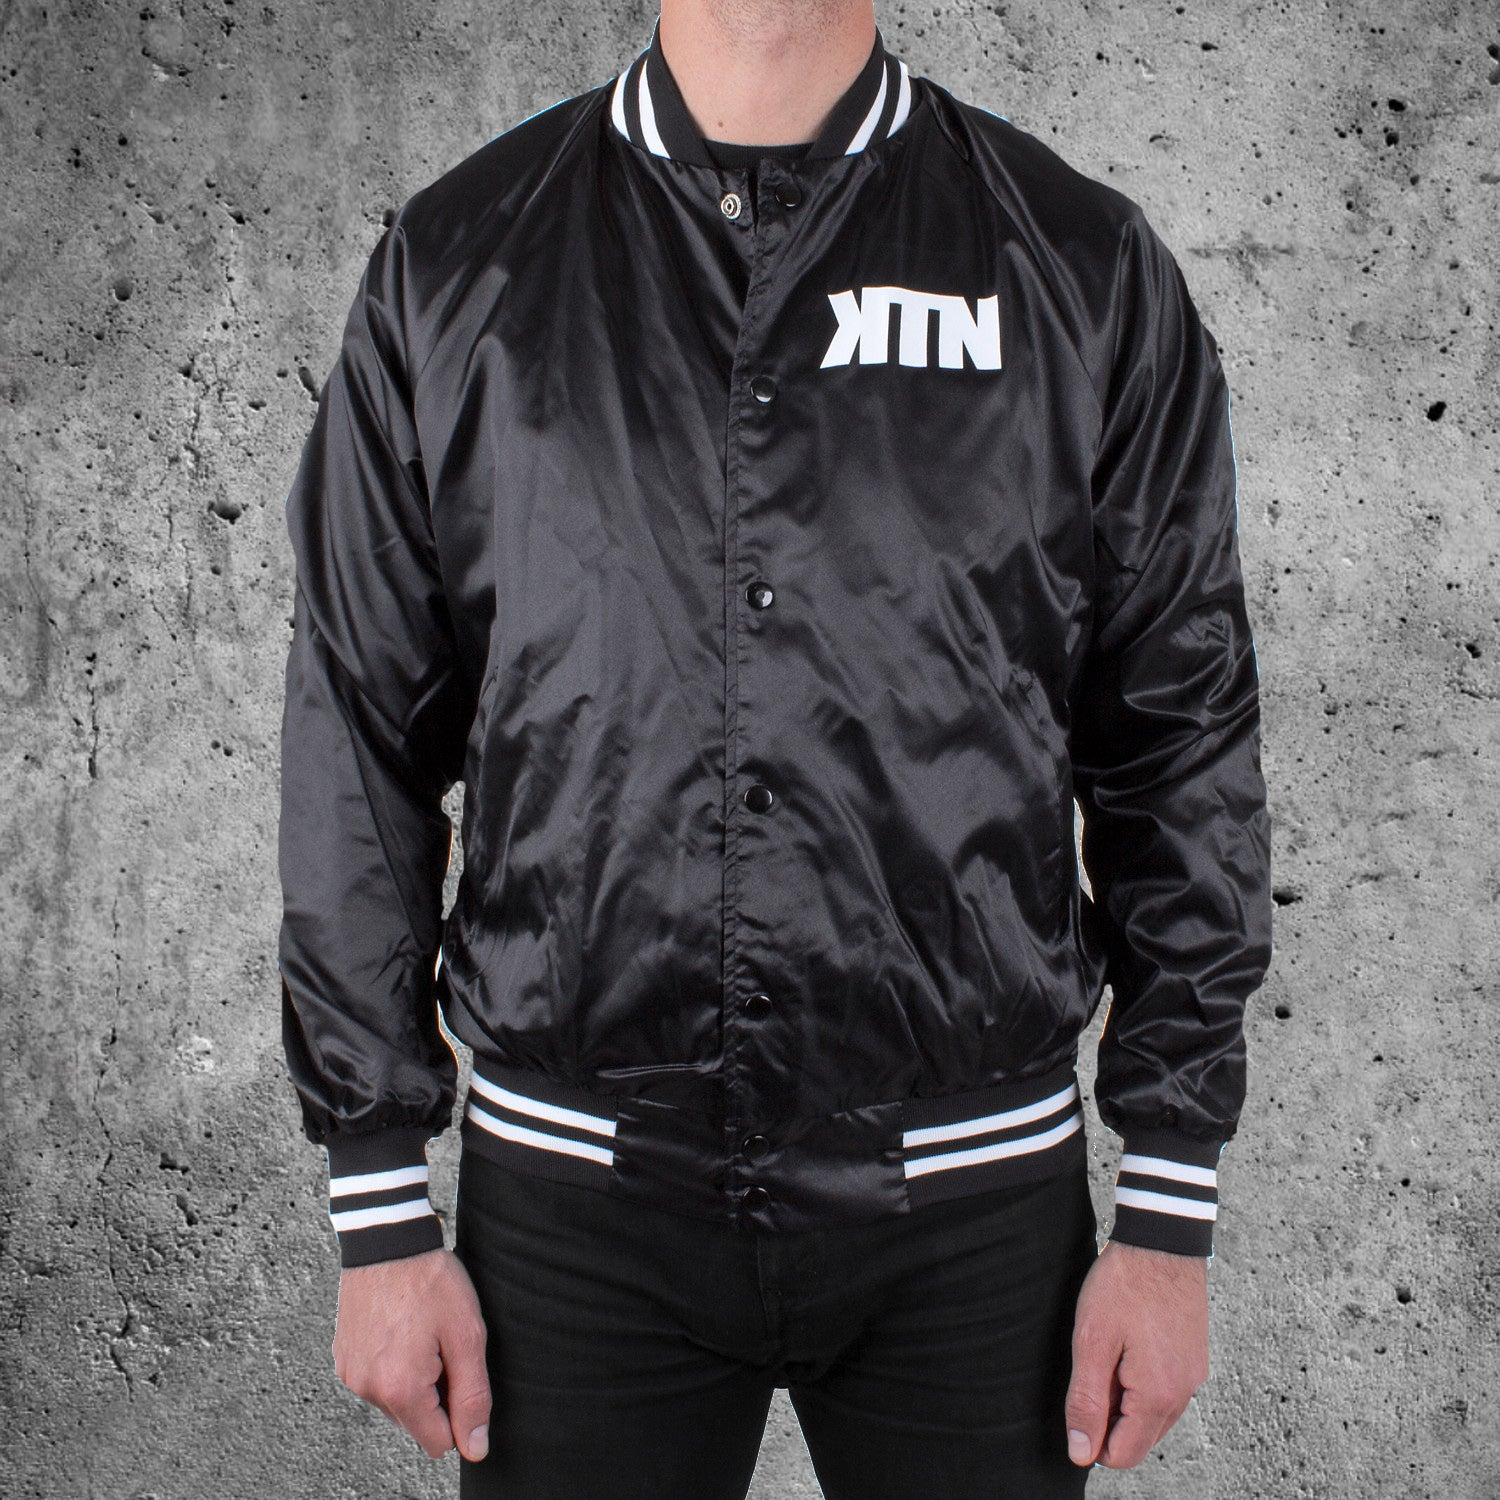 'Kill Kill Kill' Coaches Jacket